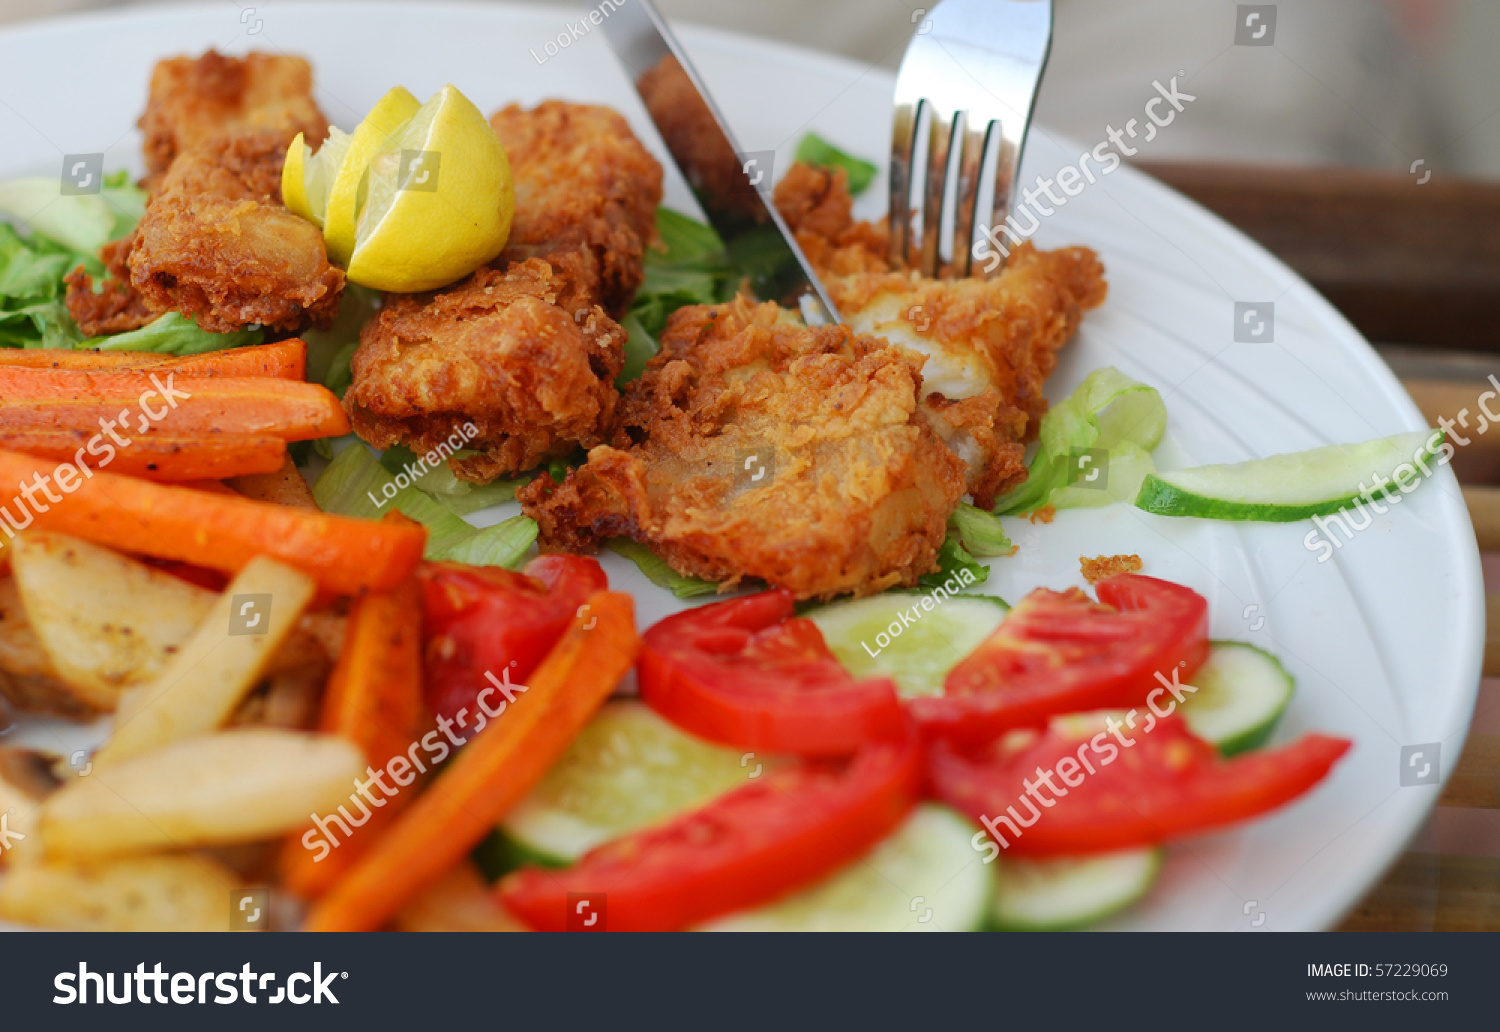 Fried fish with vegetables stock photo 57229069 shutterstock for Fish with vegetables